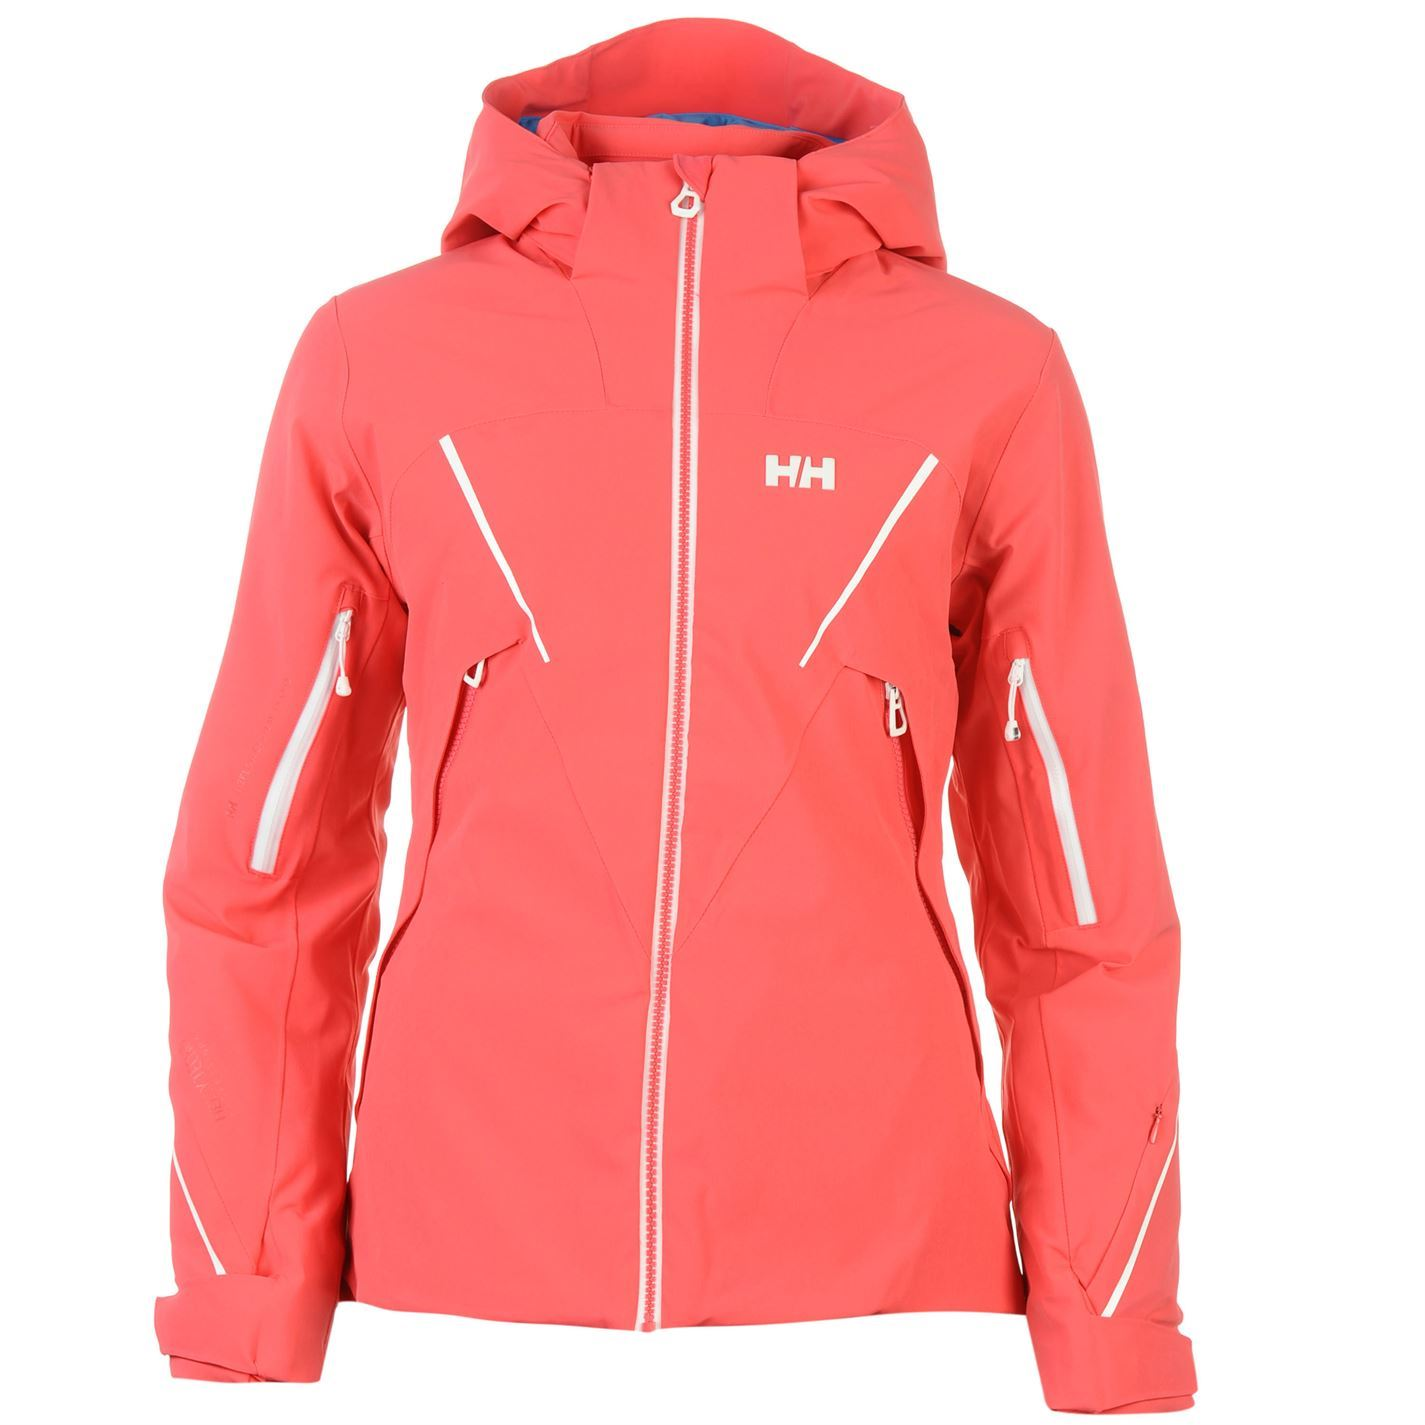 helly hansen womens arosa ski jacket coat top outwear winter snowboard ladies ebay. Black Bedroom Furniture Sets. Home Design Ideas